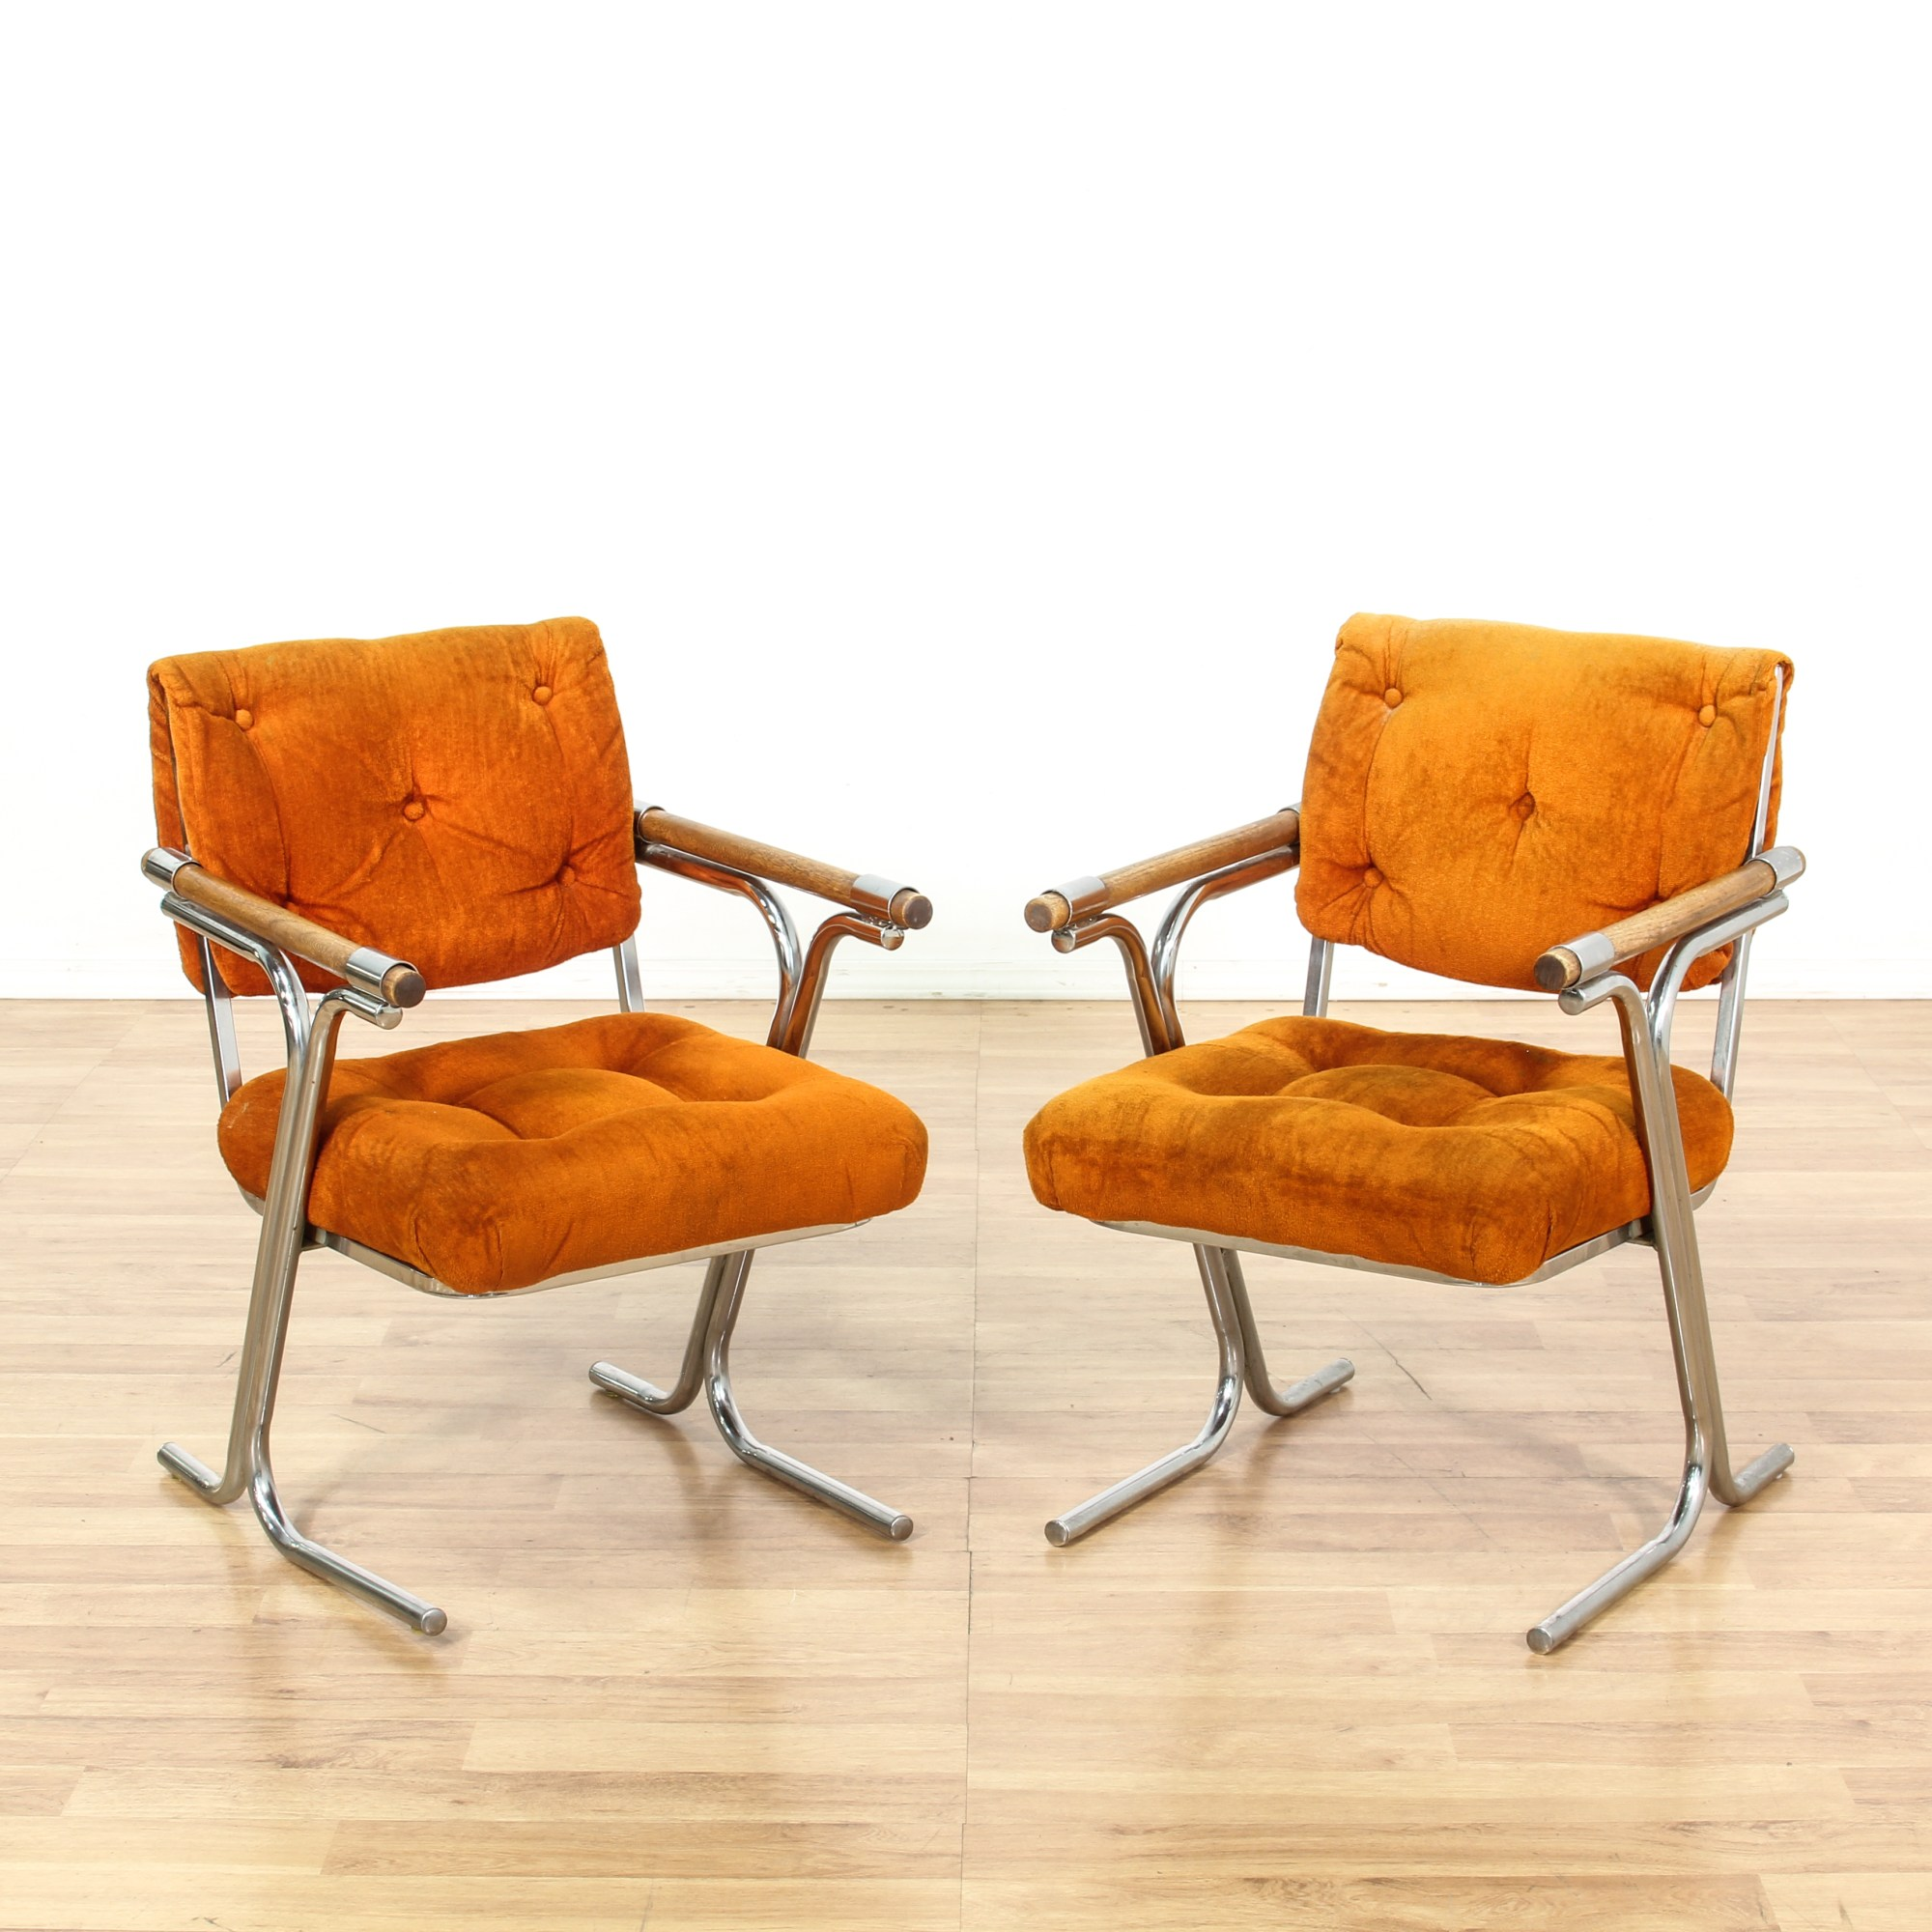 Retro Accent Chairs Pair Of Retro Burnt Orange And Chrome Accent Chairs